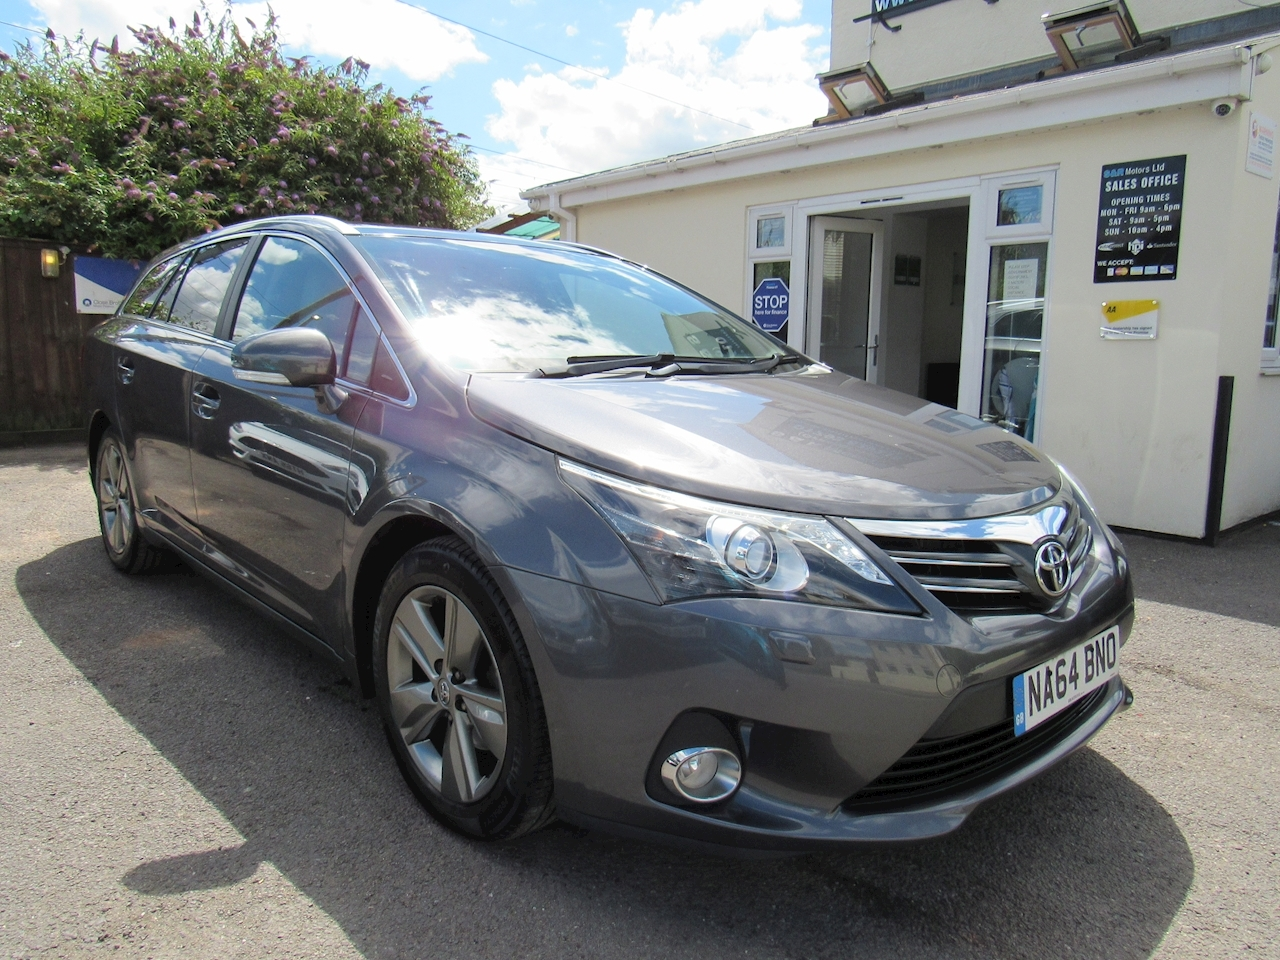 Toyota Avensis Excel Estate 2.0 Manual Diesel